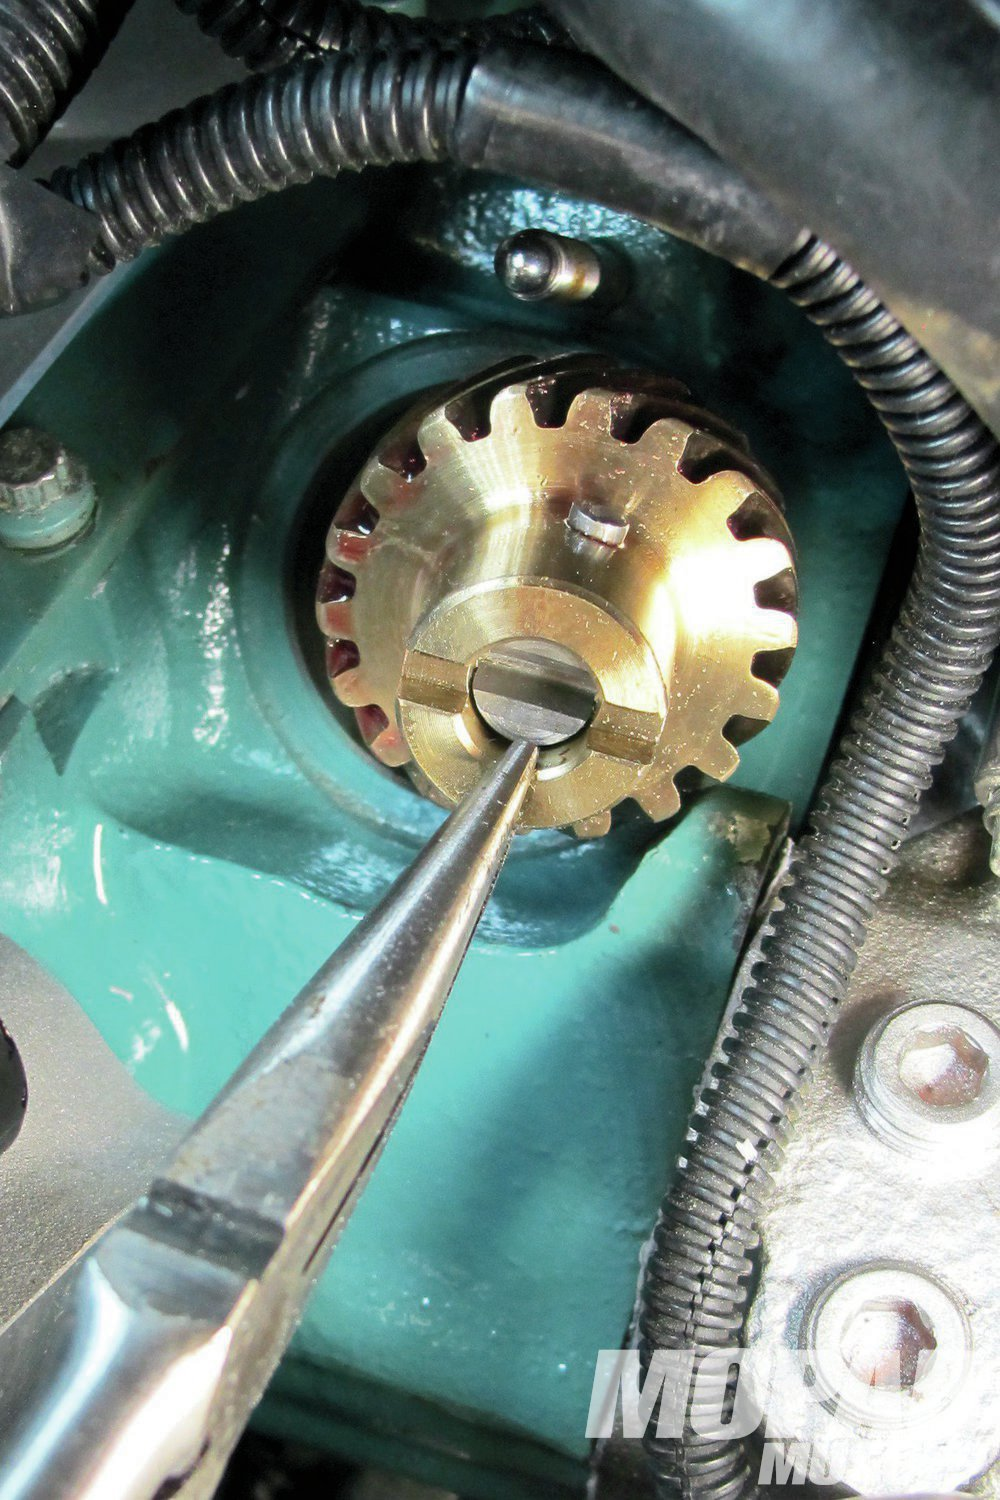 10 When changing over to a roller cam, it is the necessary to use a bronze cam/distributor gear for the oil pump shaft. We used the Milodon bronze distributor gear/shaft assembly. Be sure to check for wear after a few thousand miles. We routinely replace after 5,000-miles. Hopefully, soon, someone will offer a composite-type gear that will last for many more miles.